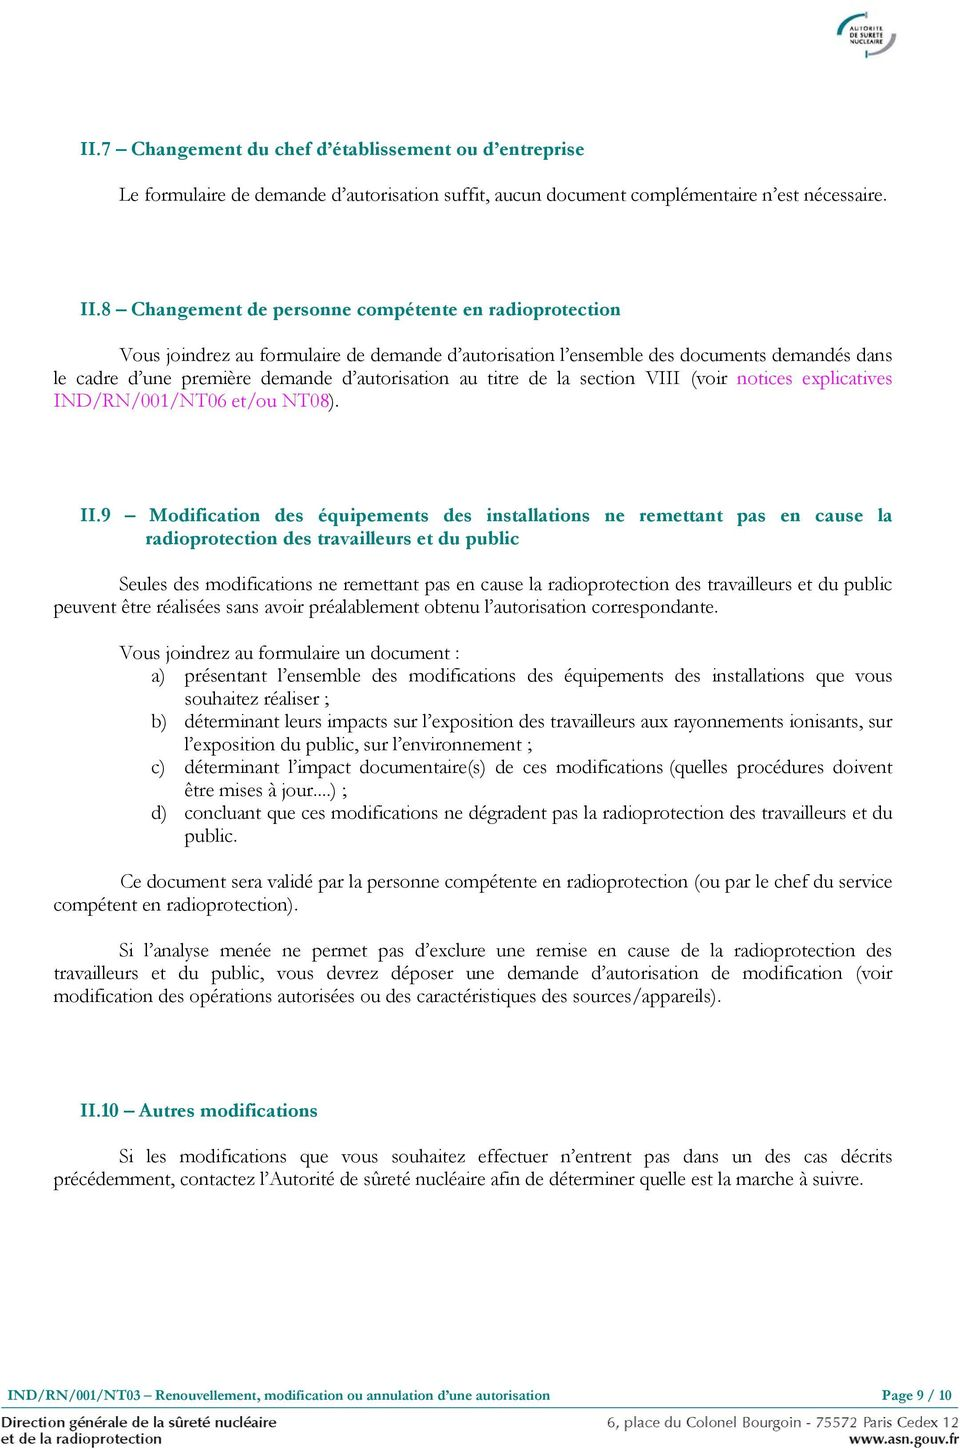 titre de la section VIII (voir notices explicatives IND/RN/001/NT06 et/ou NT08). II.